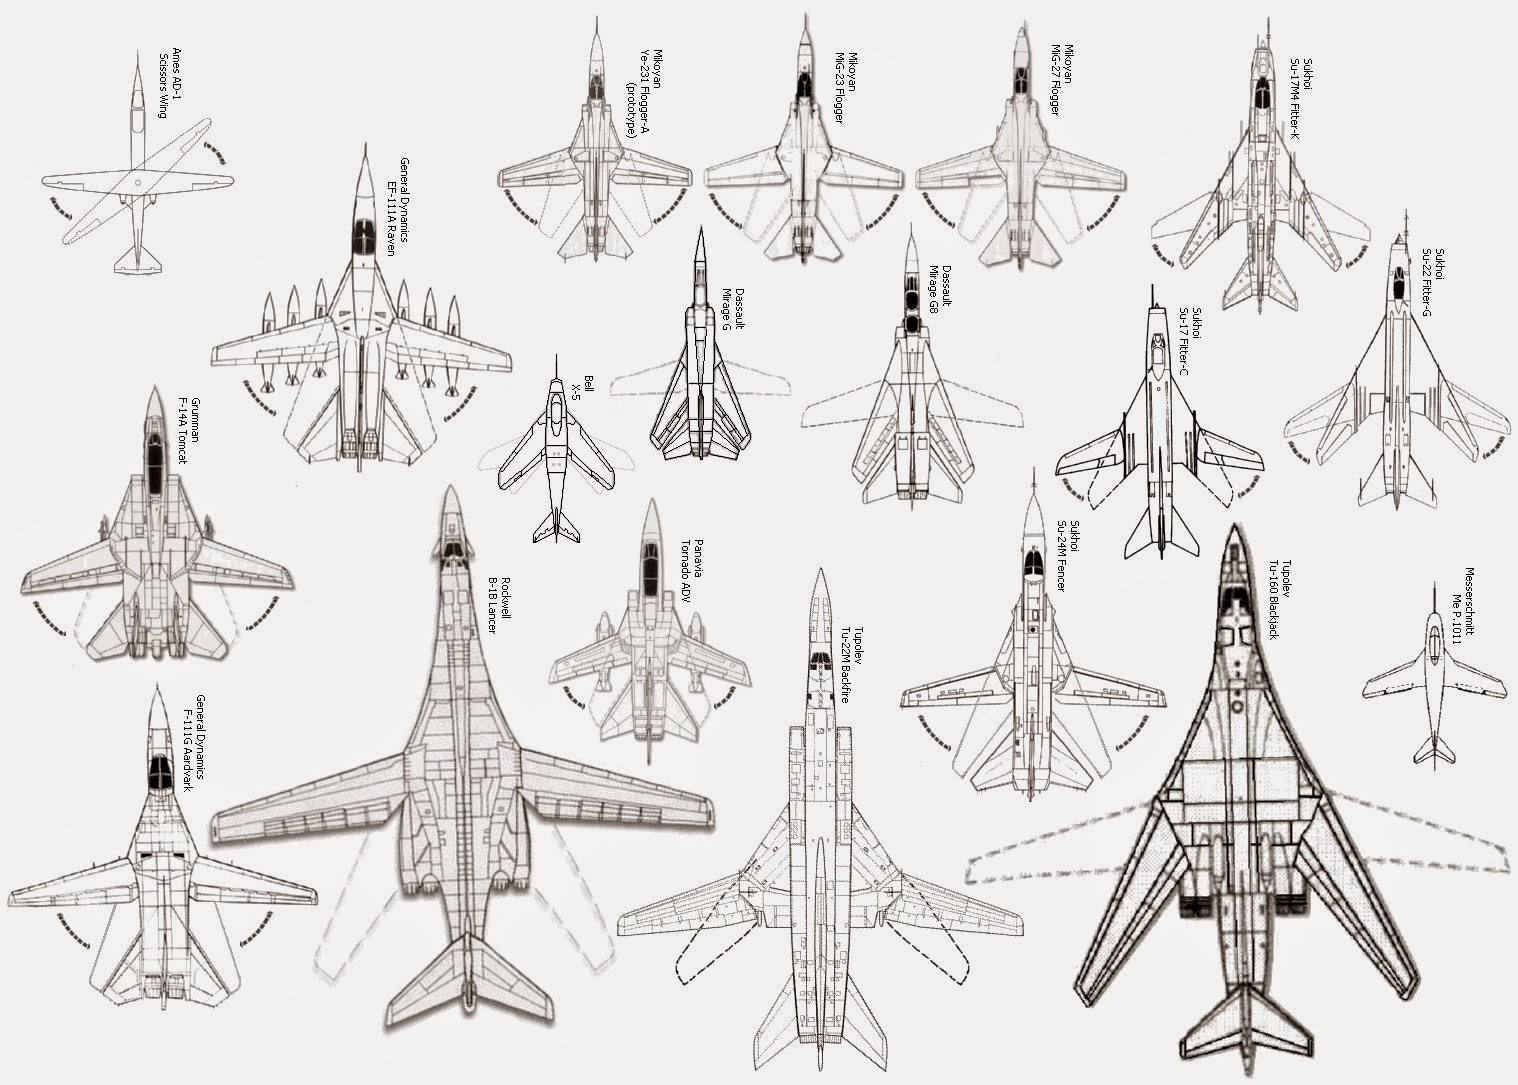 Tant Blog 78 Su 24 Fencer Russian Sukhoi Fighter